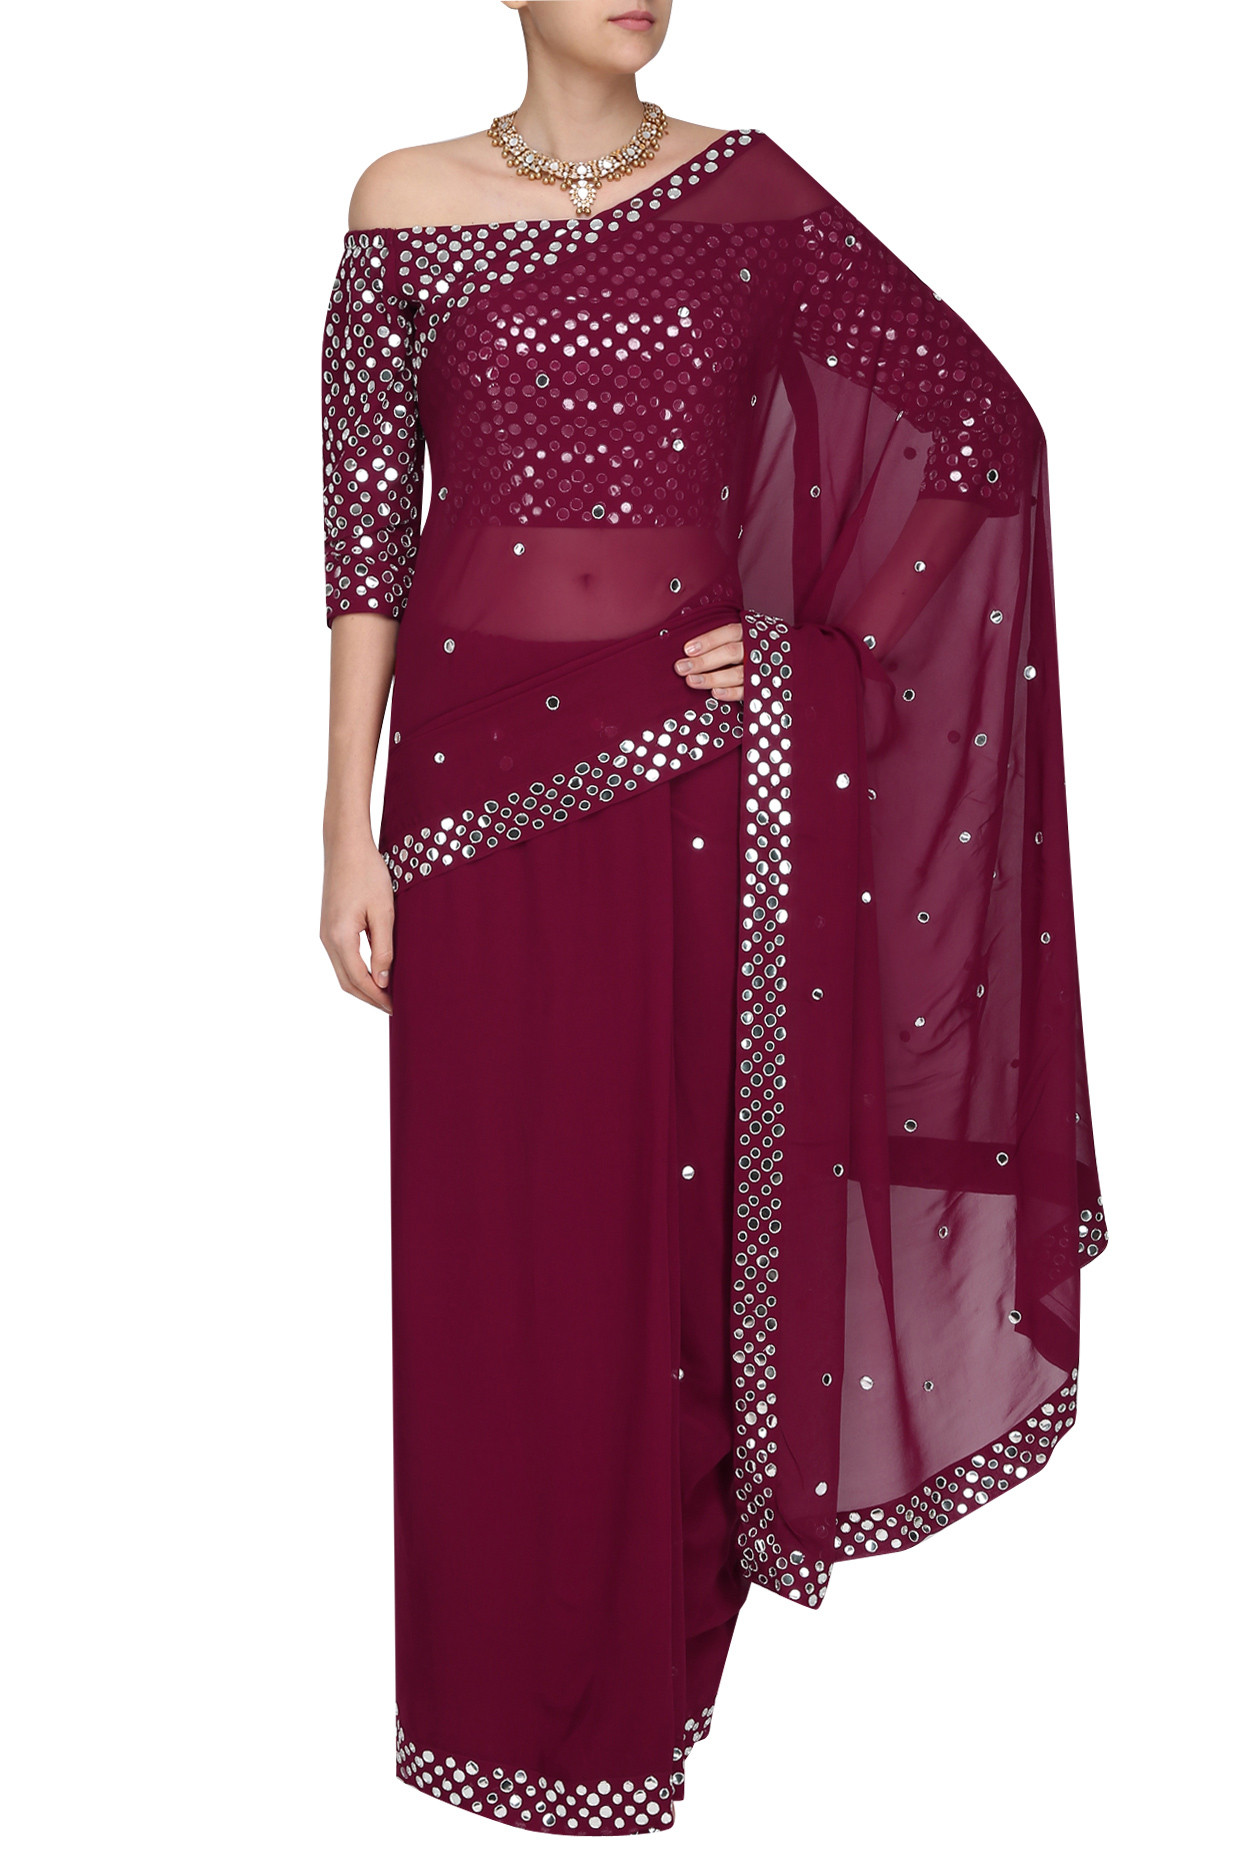 Maroon Hand Embroidered Saree with Off Shoulder Blouse by Surendri